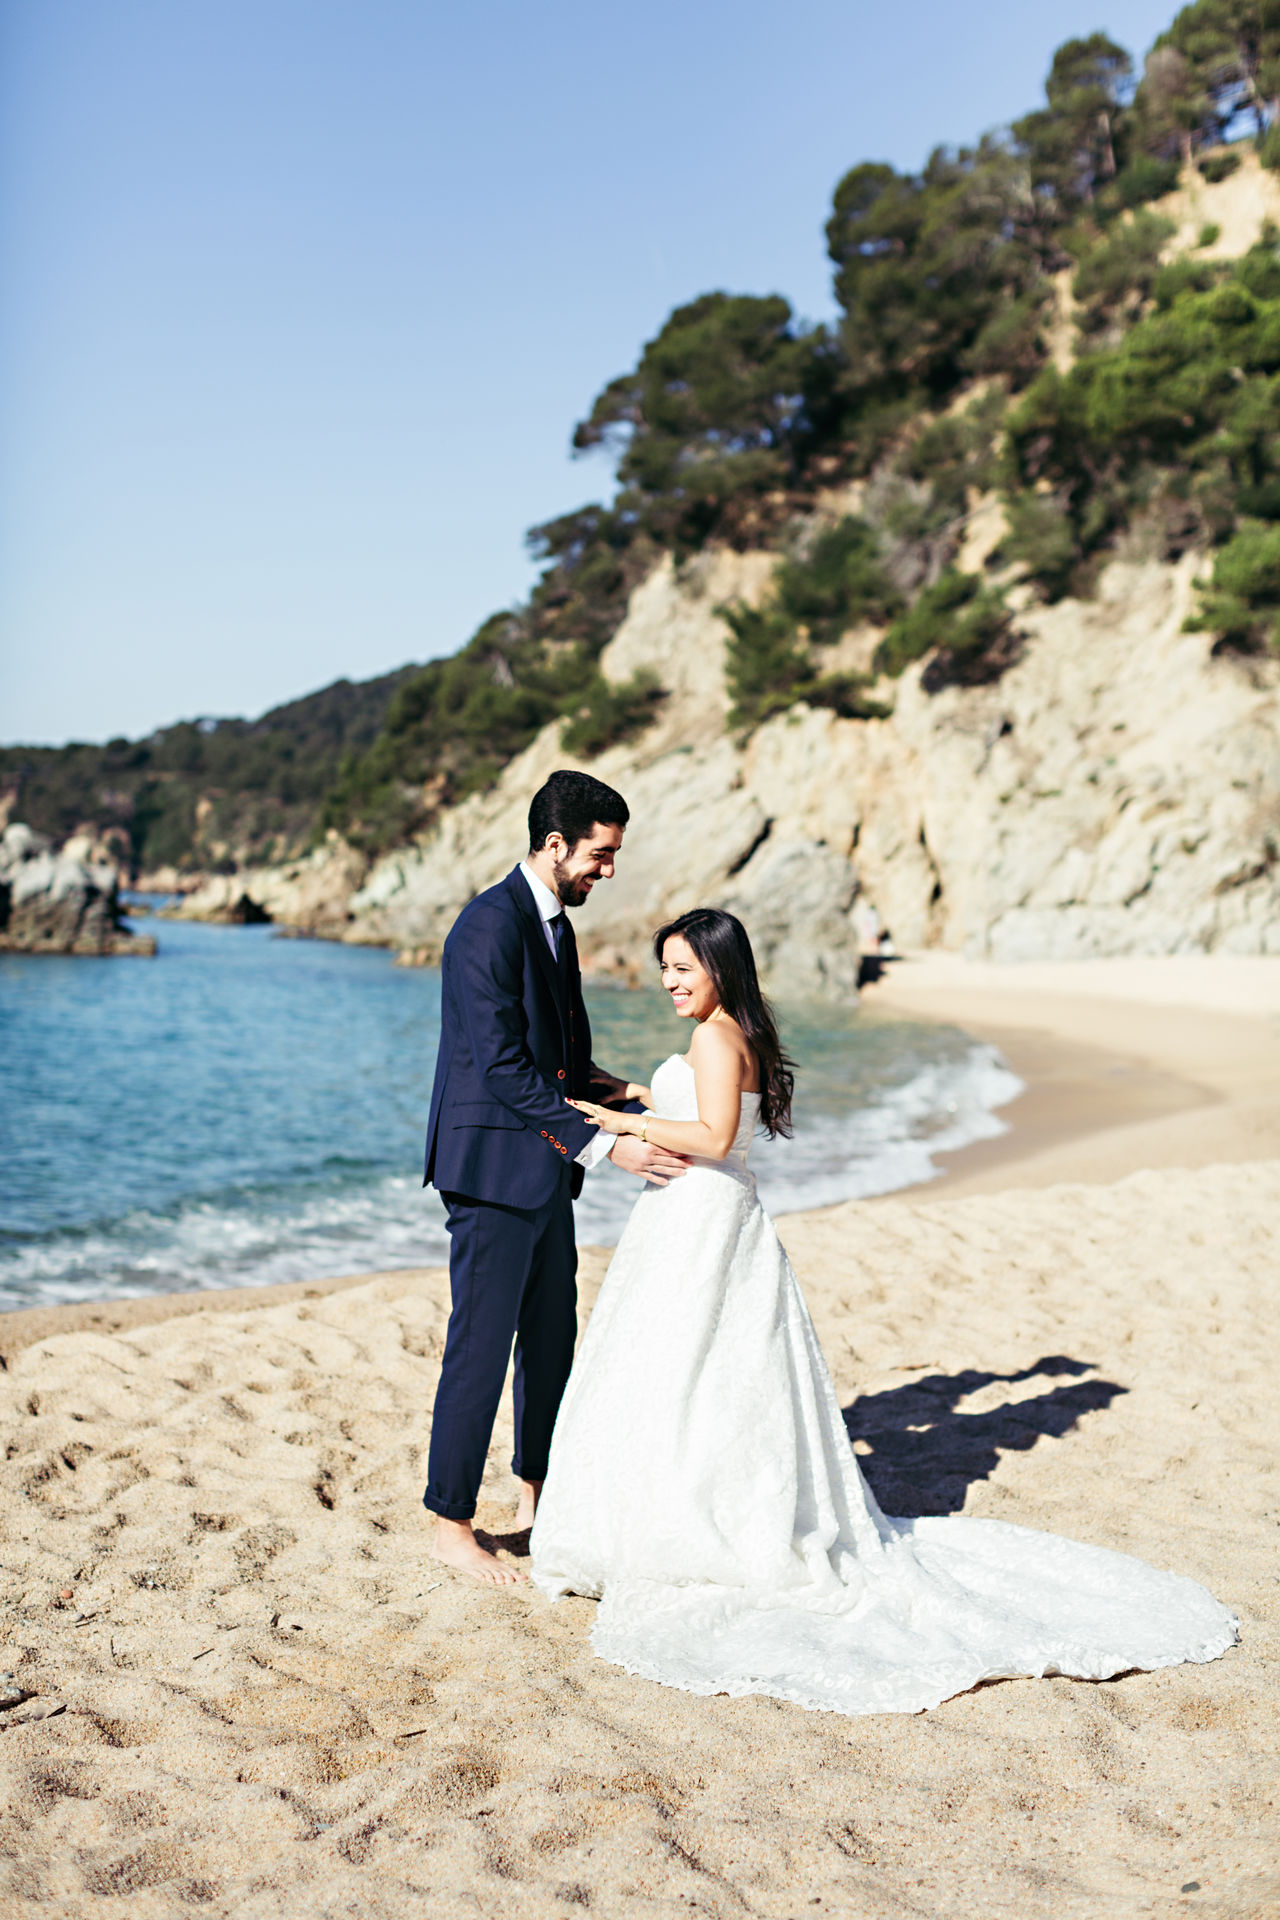 Beach Bonding Bride Bridegroom Celebration Day Full Length Happiness Husband Life Events Love Married Men Nature Real People Romance Togetherness Two People Wedding Wedding Dress Wife Women Young Adult Young Men Young Women